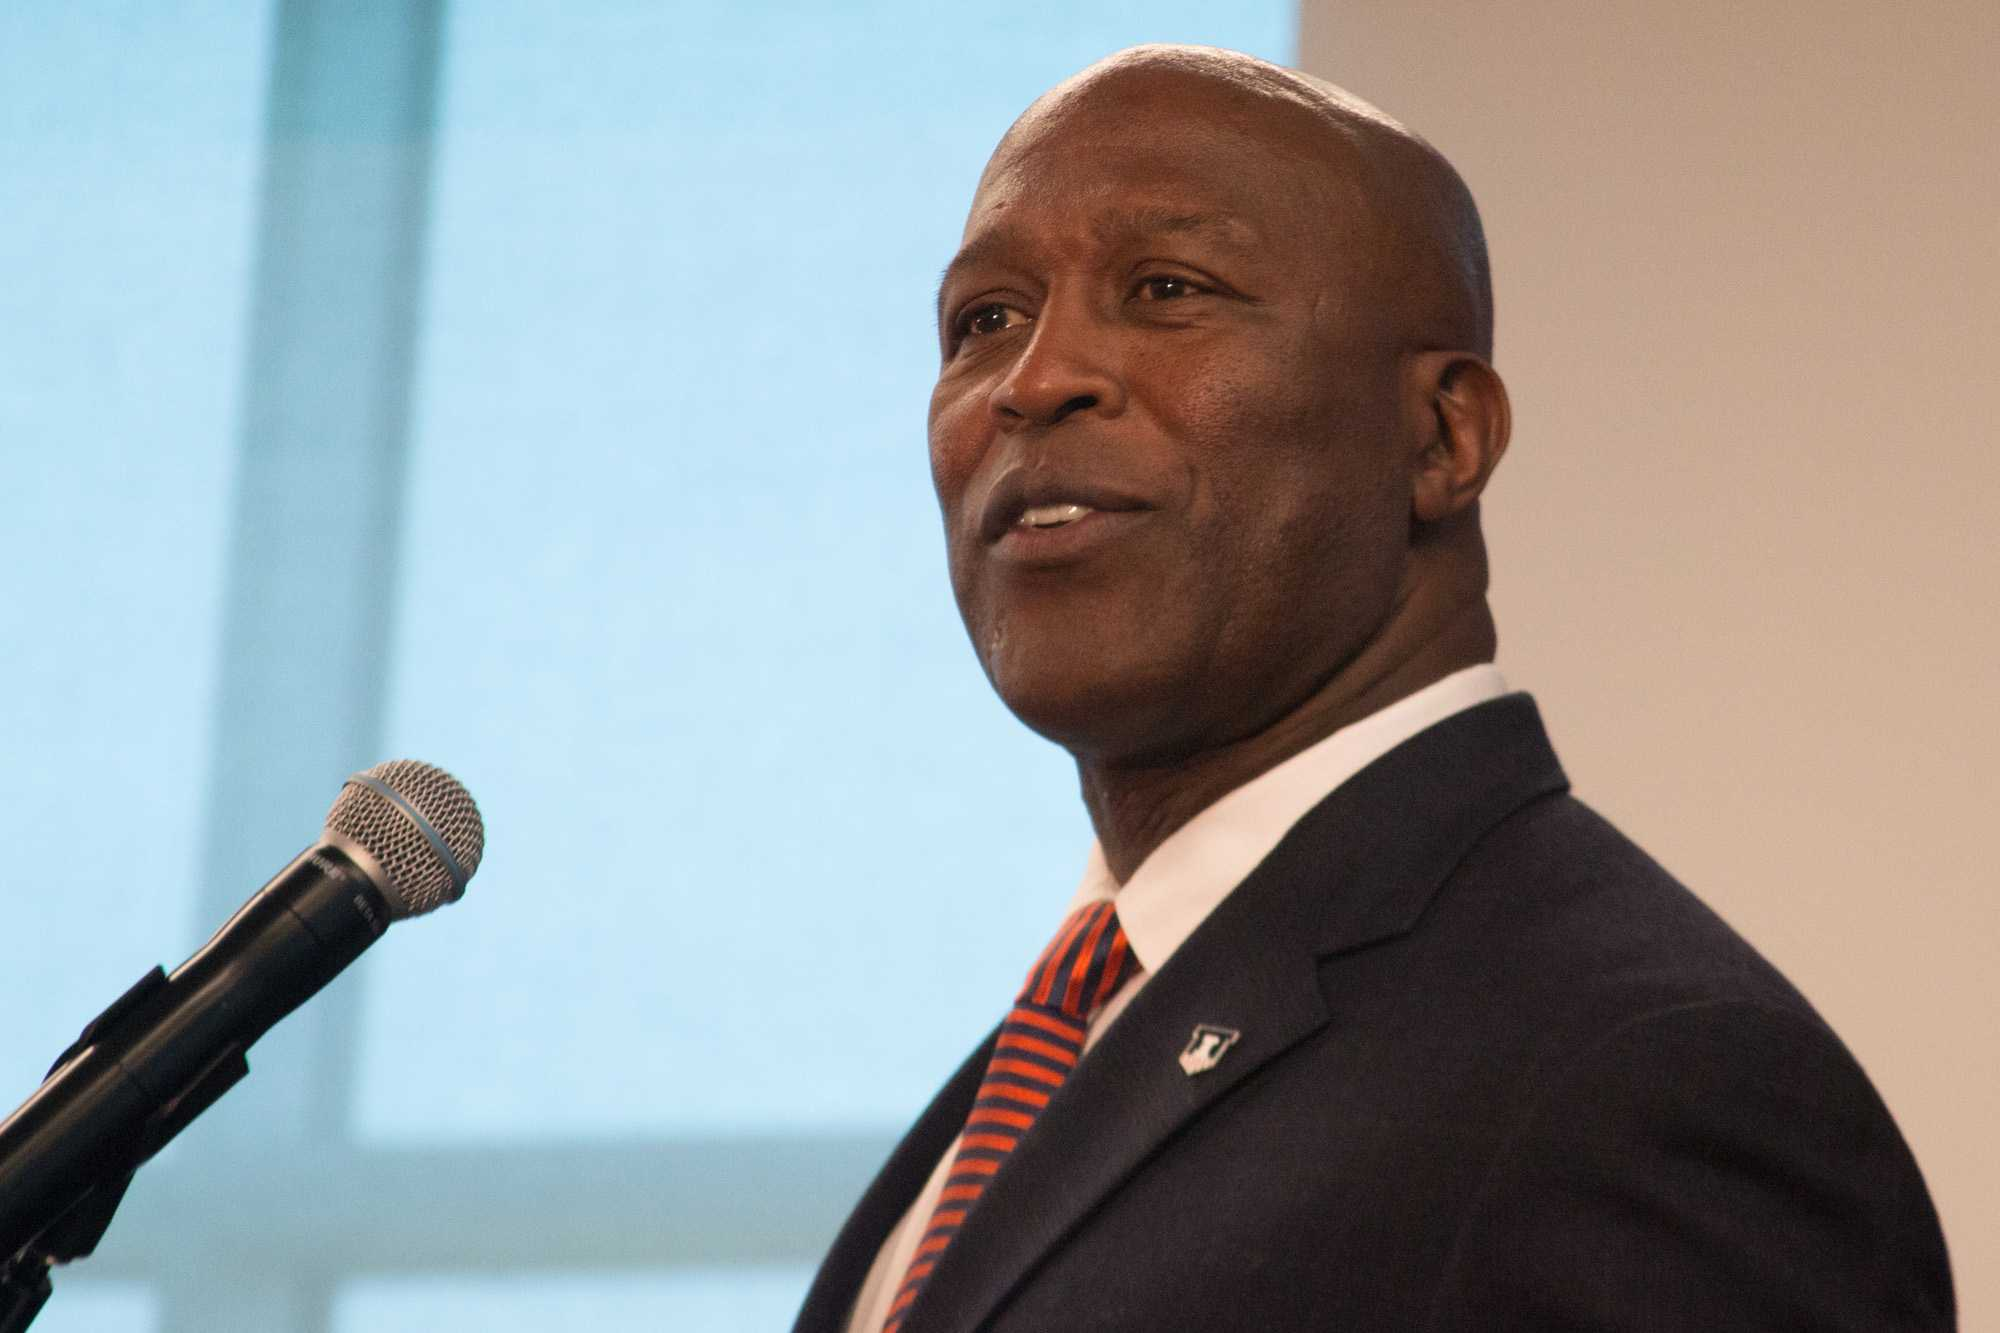 Lovie Smith responds to questions at the press conference on Monday, March 7, 2016.